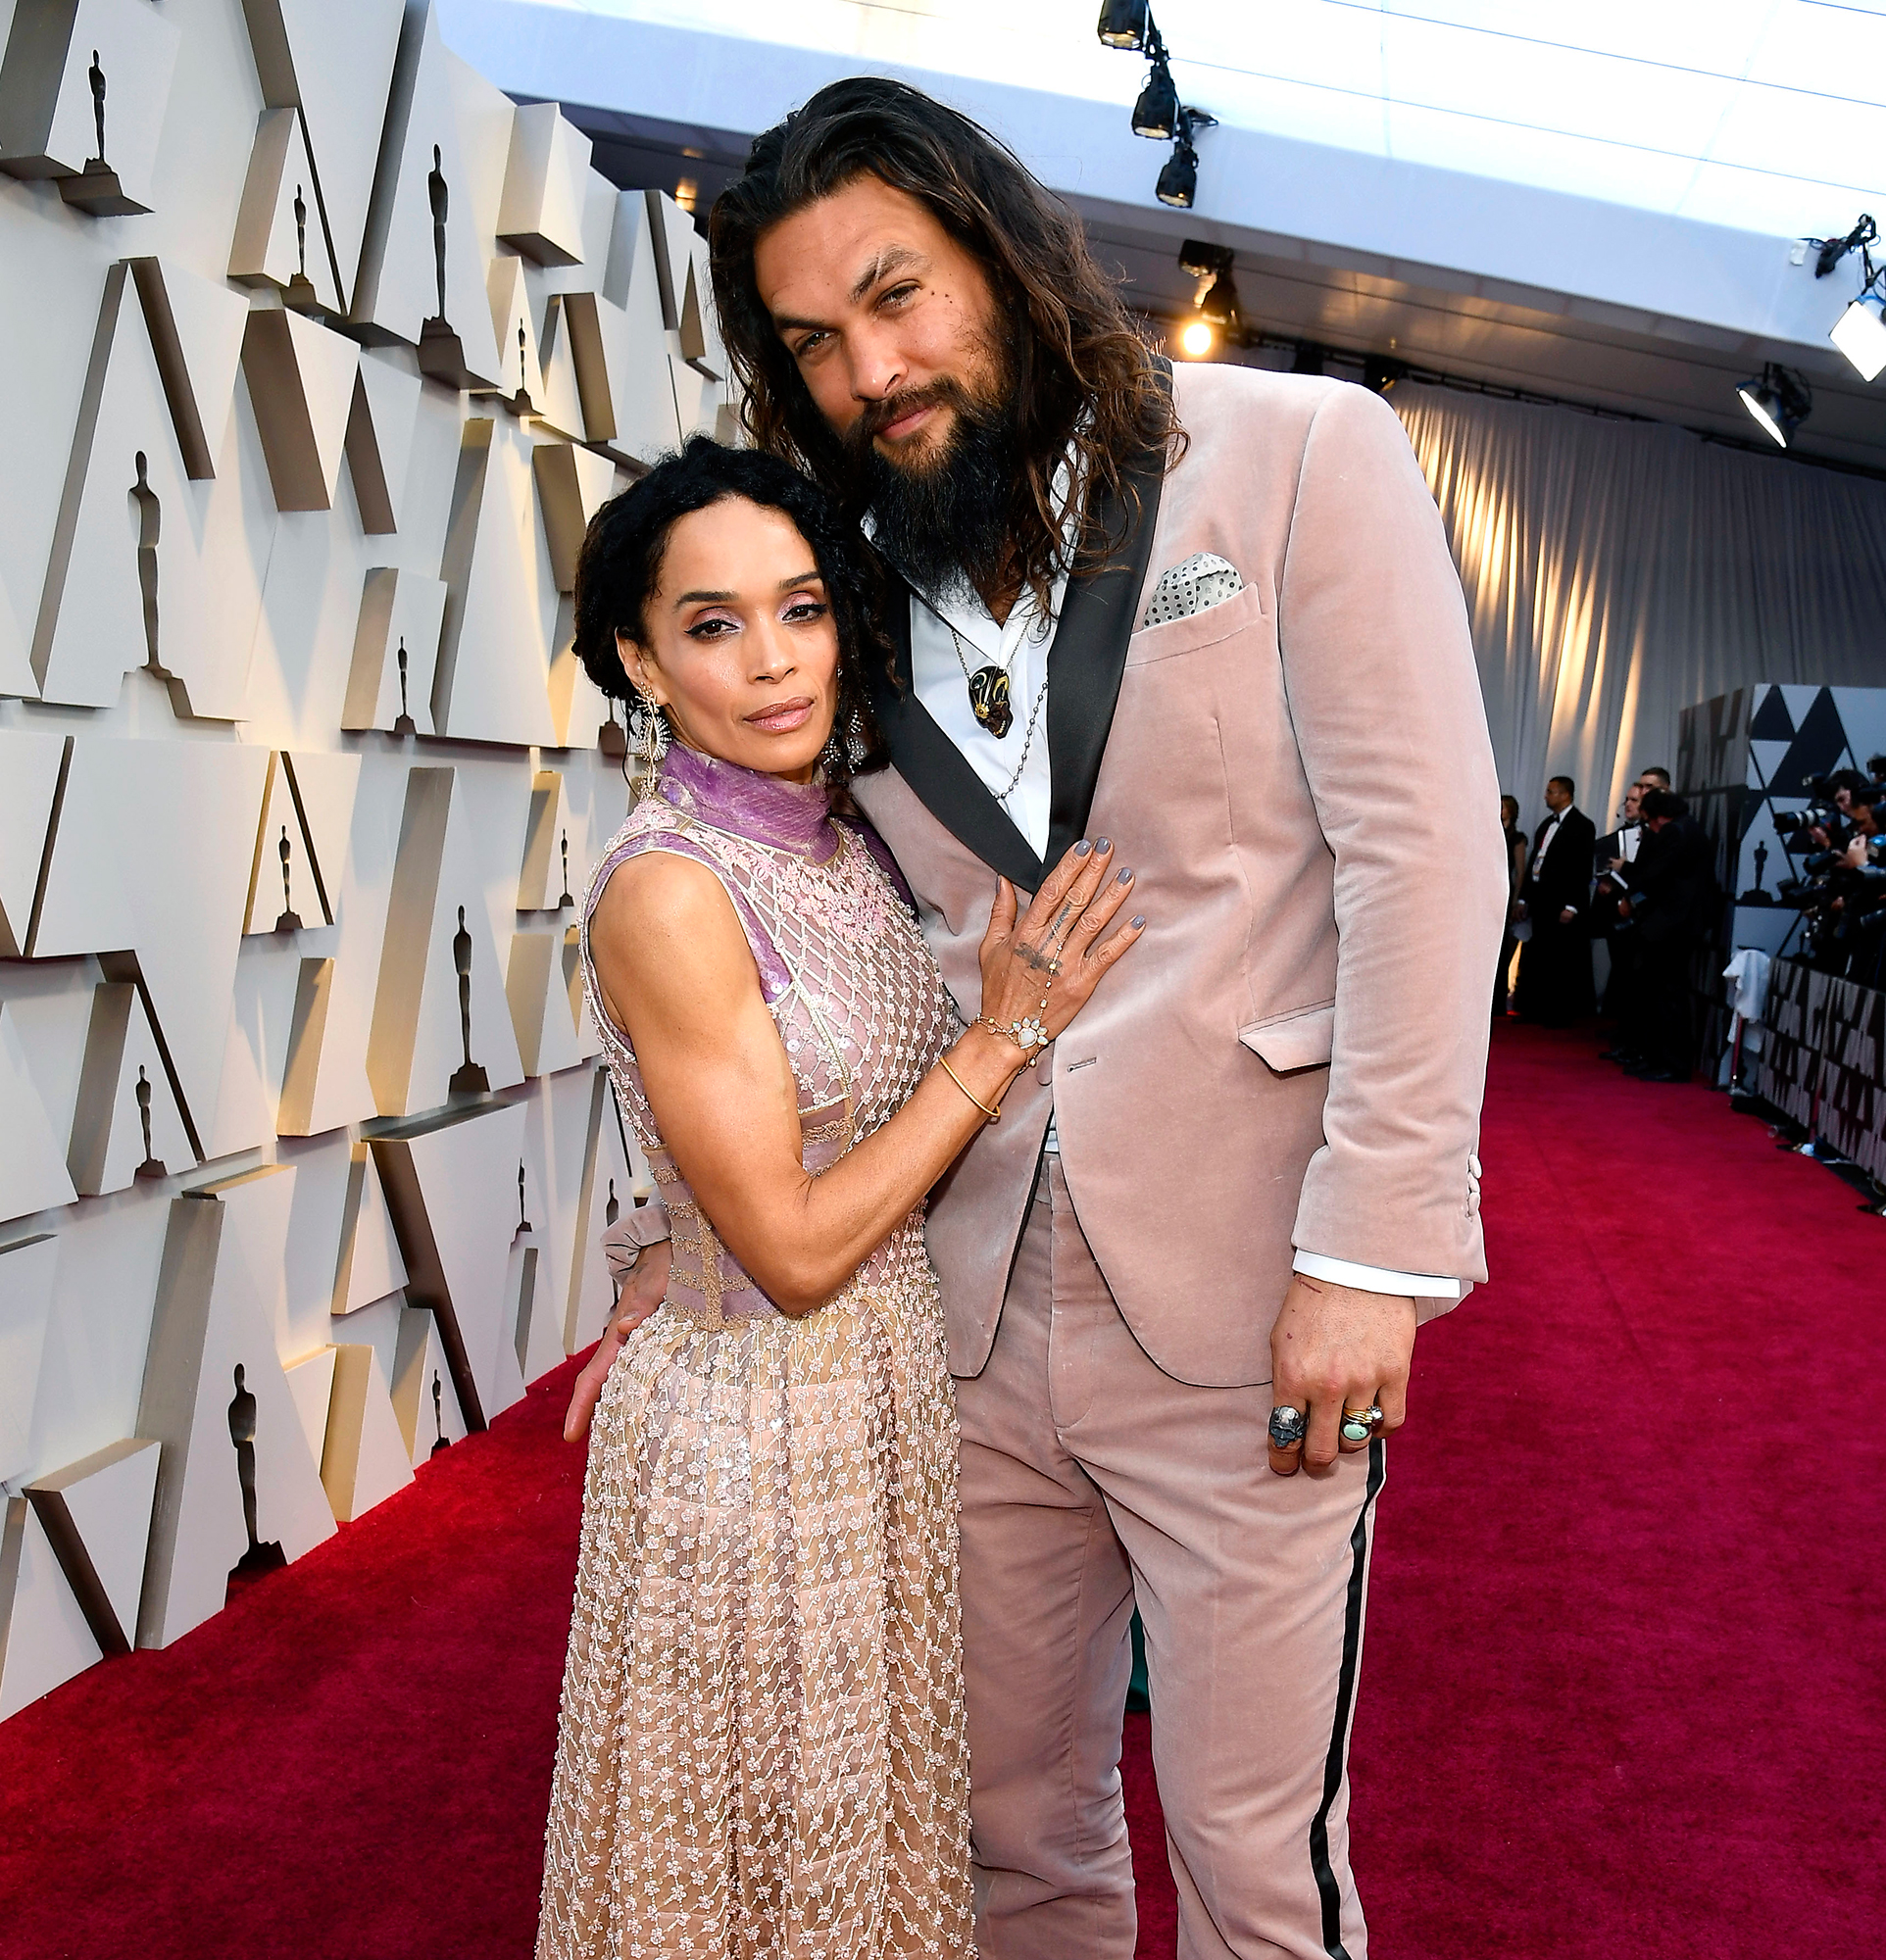 While Jason Momoa looks absolutely KILLER in his blush, velvet suit and matching scrunchie…LOOK AT HIS WIFE. That beaded overlay and lavender silk peeking out is an insane combo. I would also kill for her arms, but that's for a different post ;)